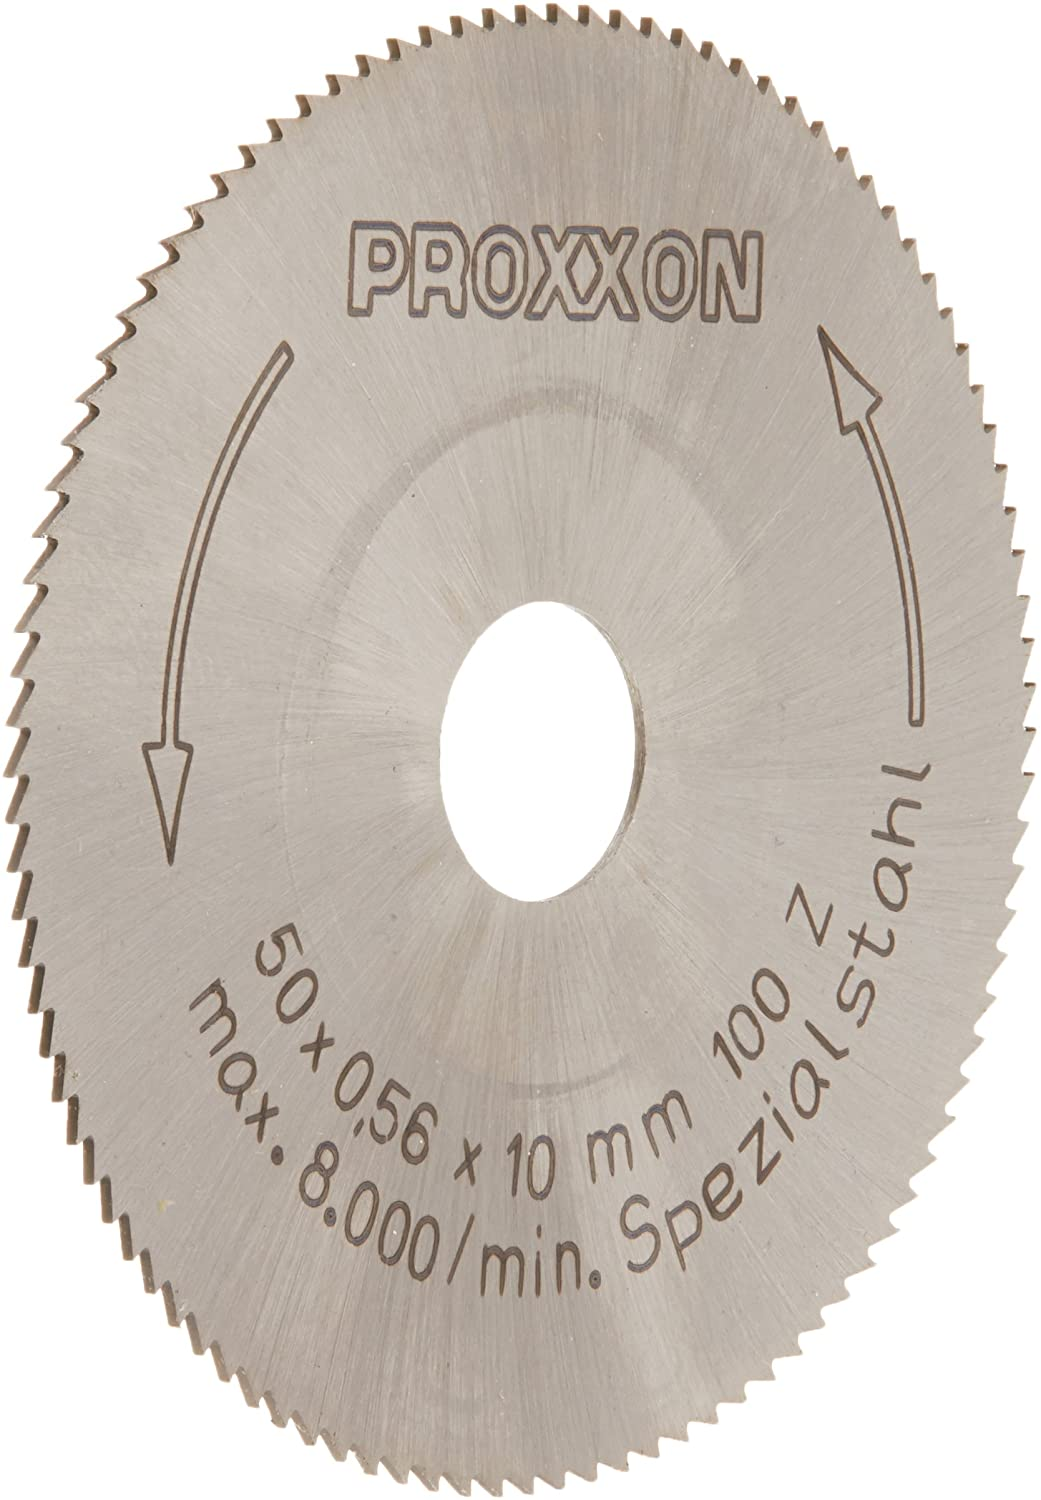 Proxxon 28020 HSS saw blade for KS 115, 2